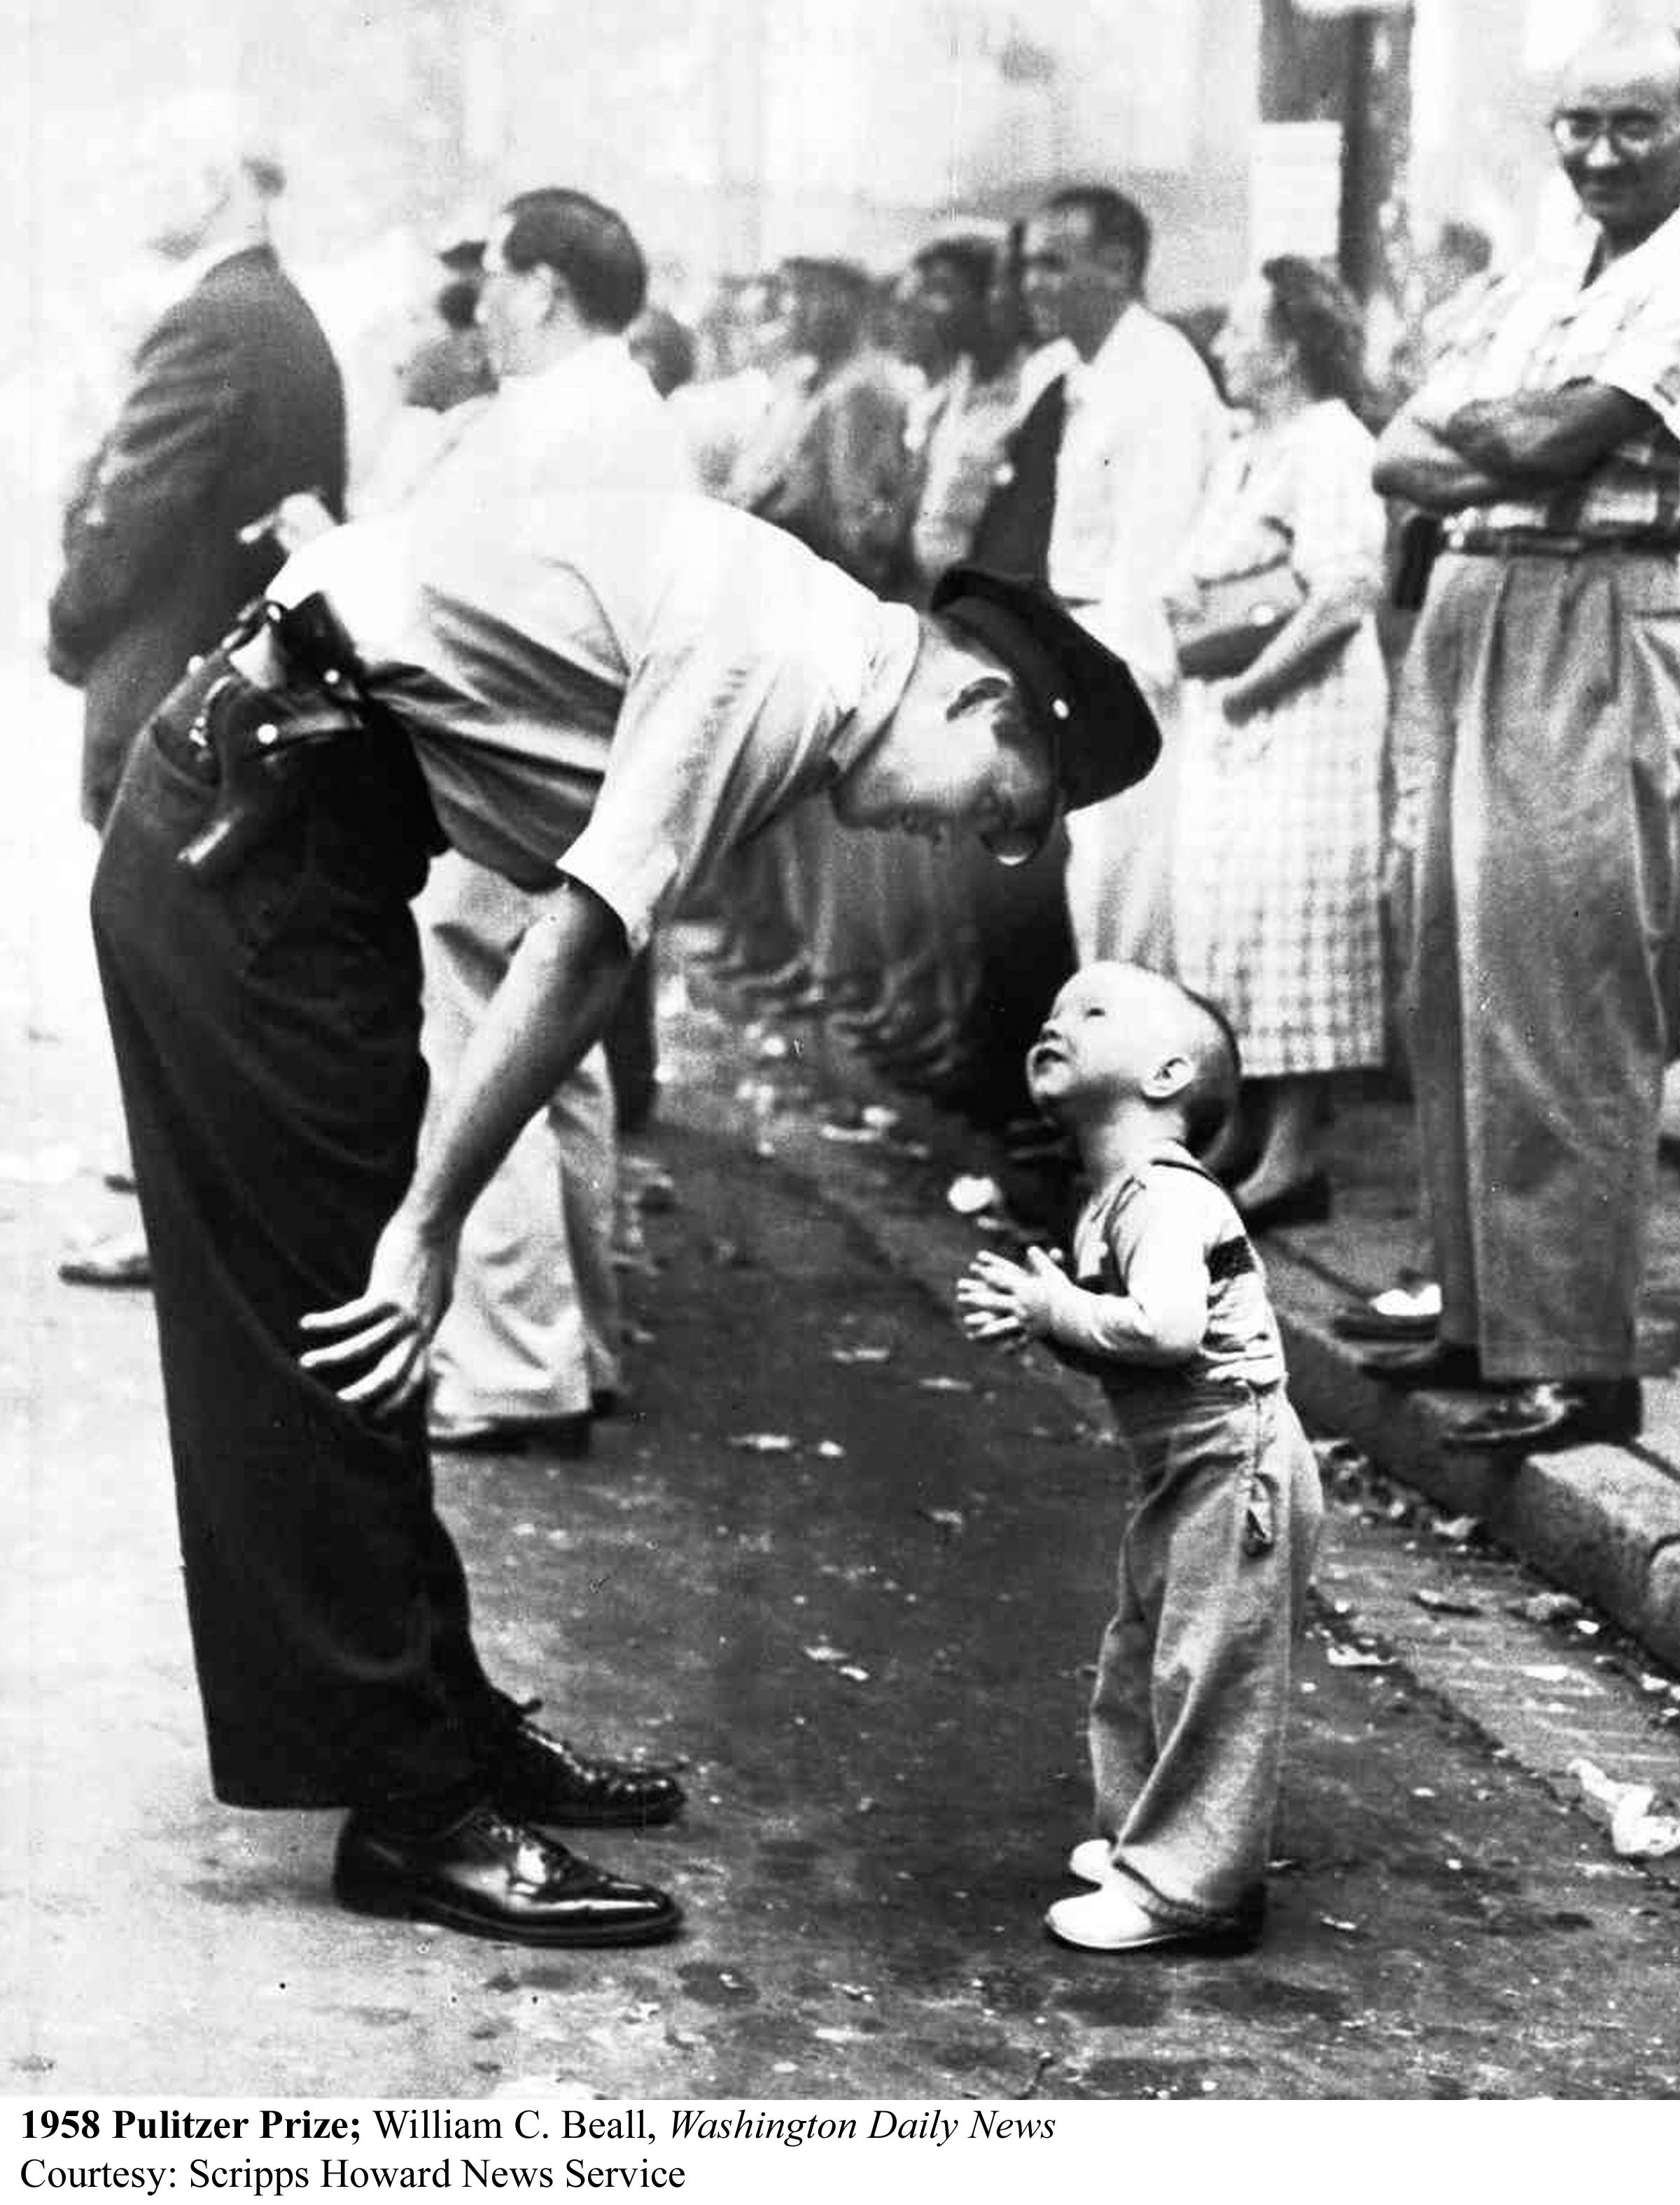 a-policeman-patiently-reasoning-with-a-two-year-old-boy-trying-to-cross-a-parade-1958